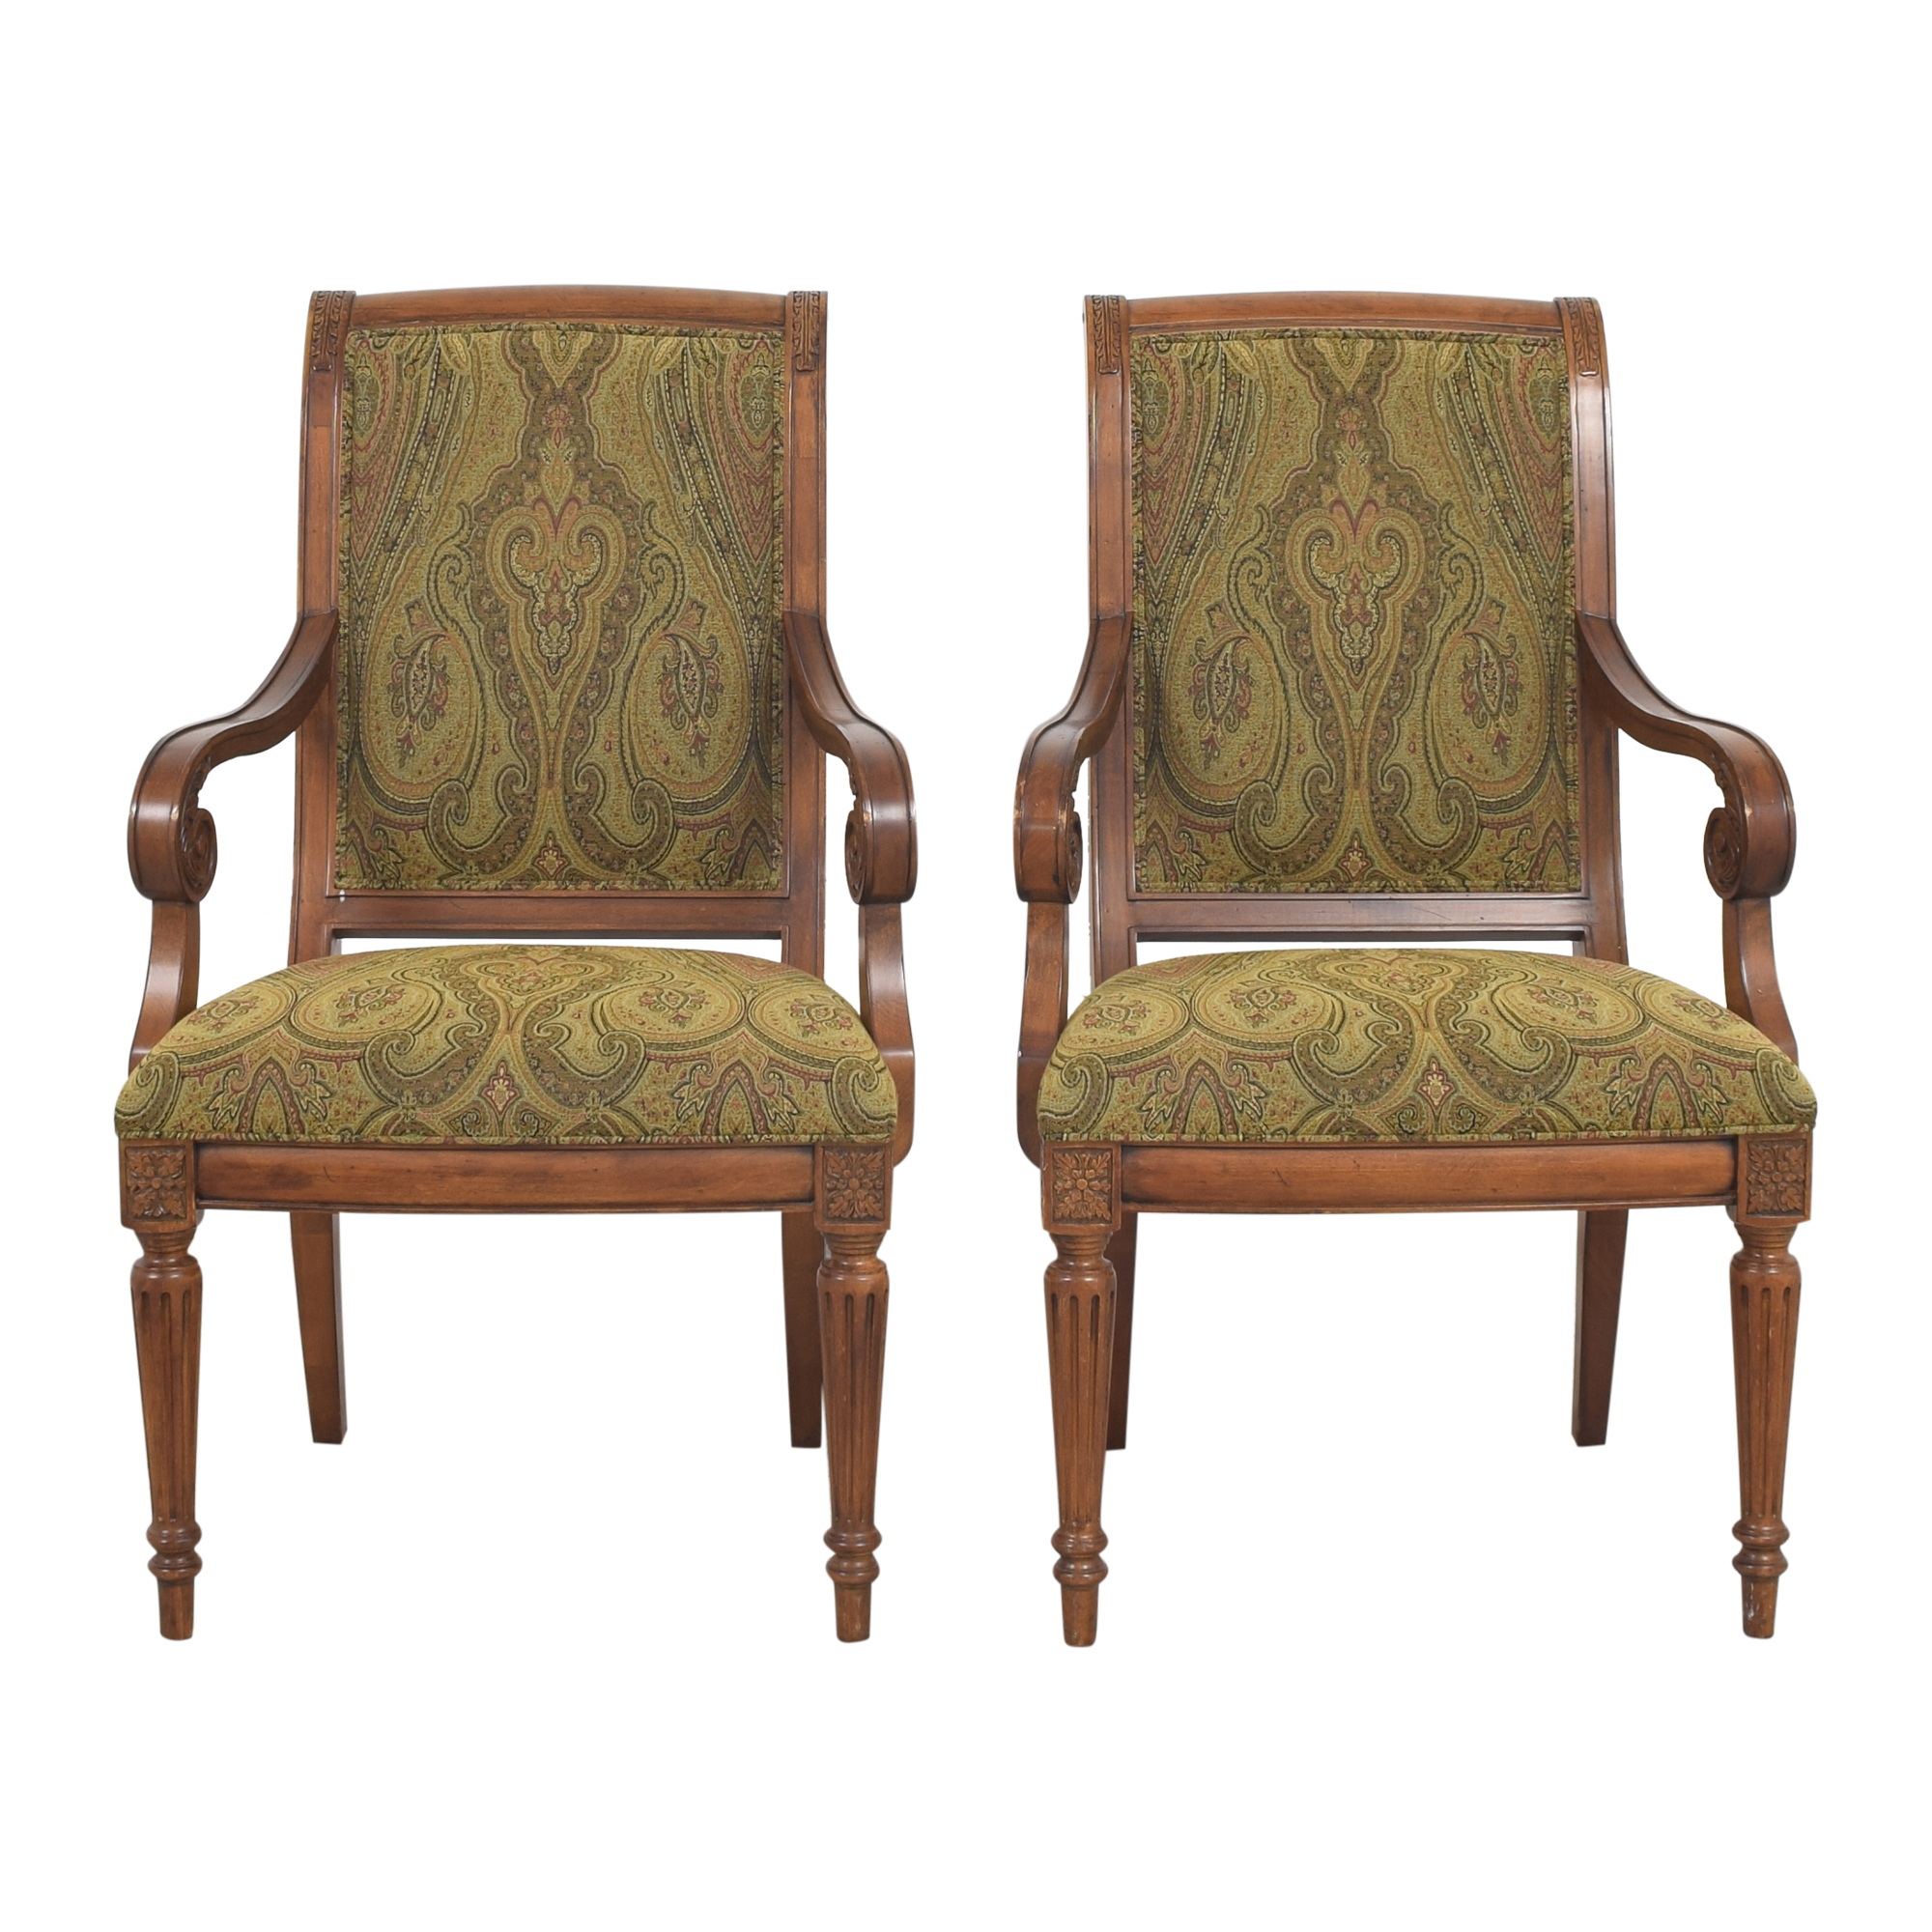 Ethan Allen Ethan Allen Adison Dining Arm Chairs Dining Chairs